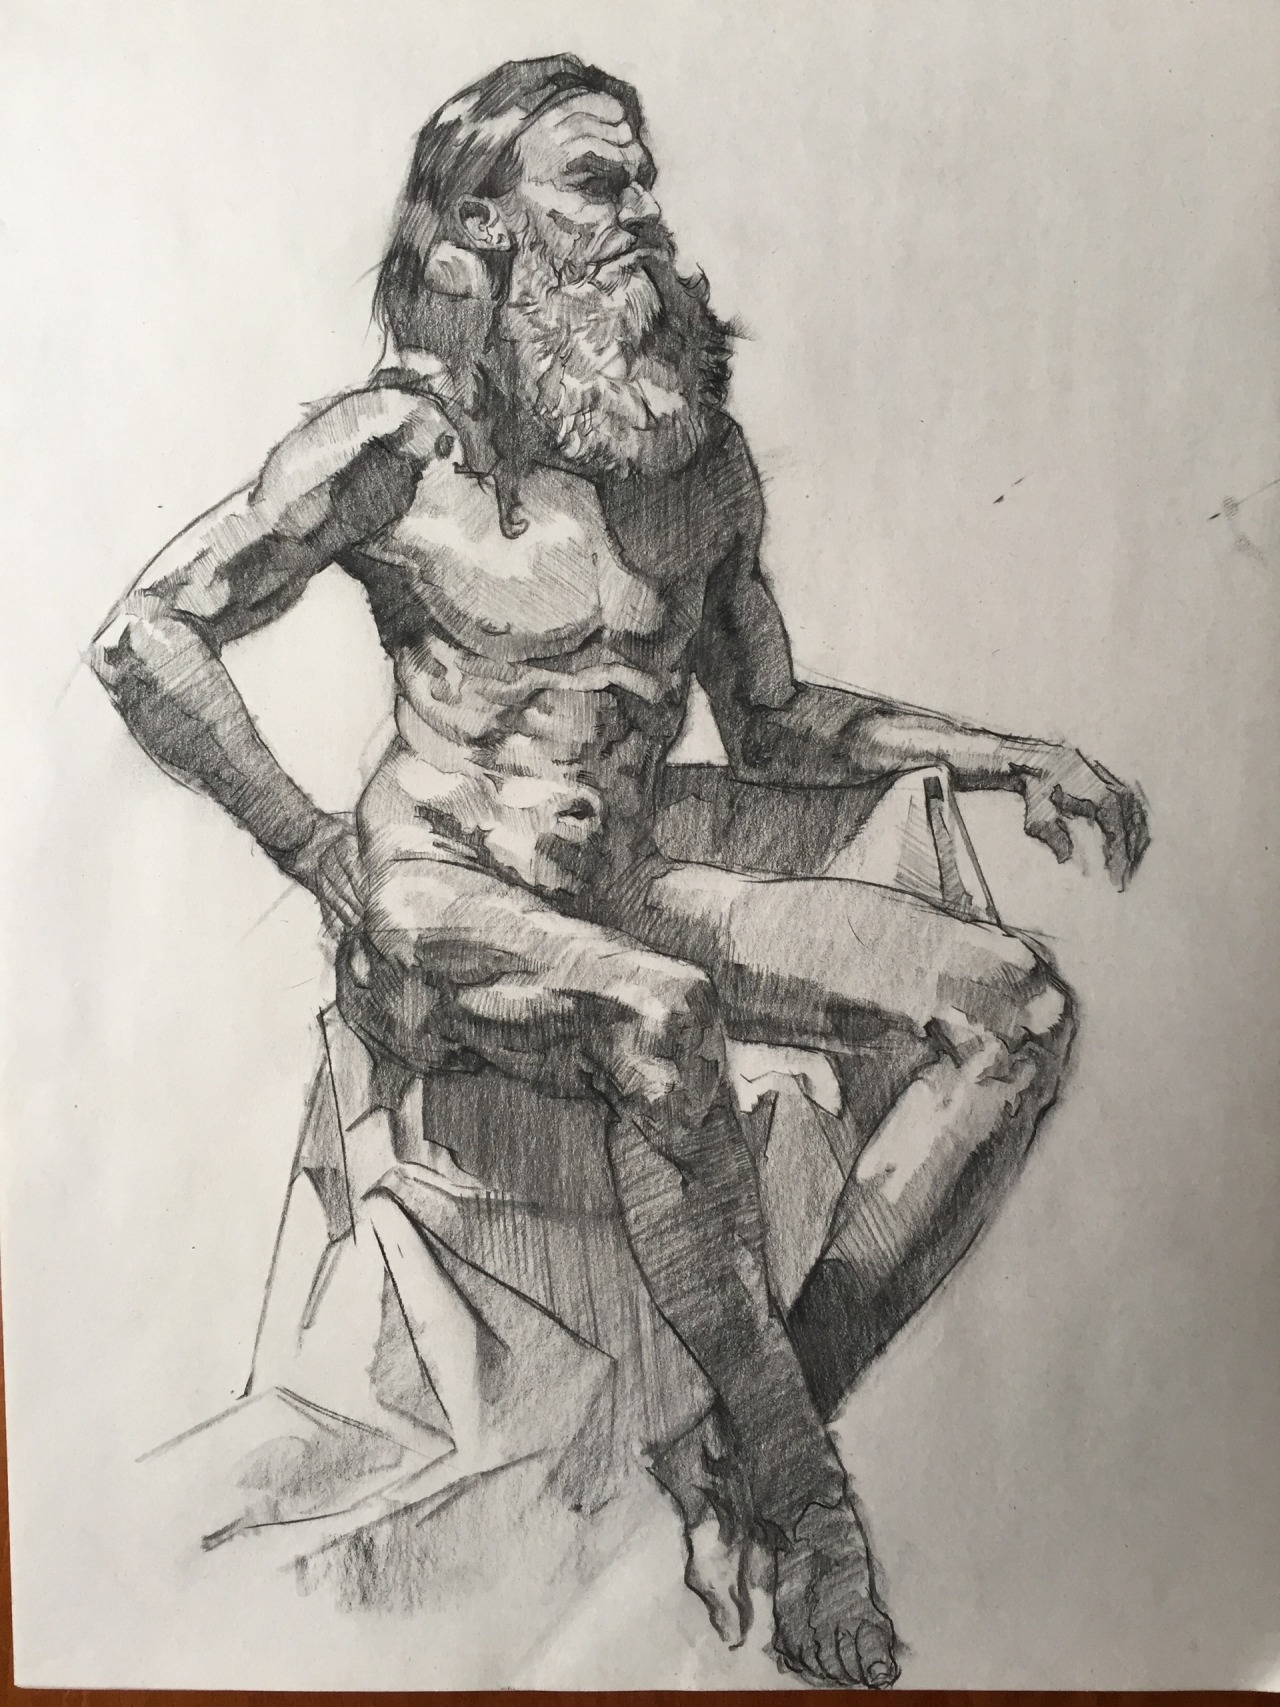 1280x1707 Art Of Andrew Sides 1.5 Hour Figure Drawing, Conte And Charcoal